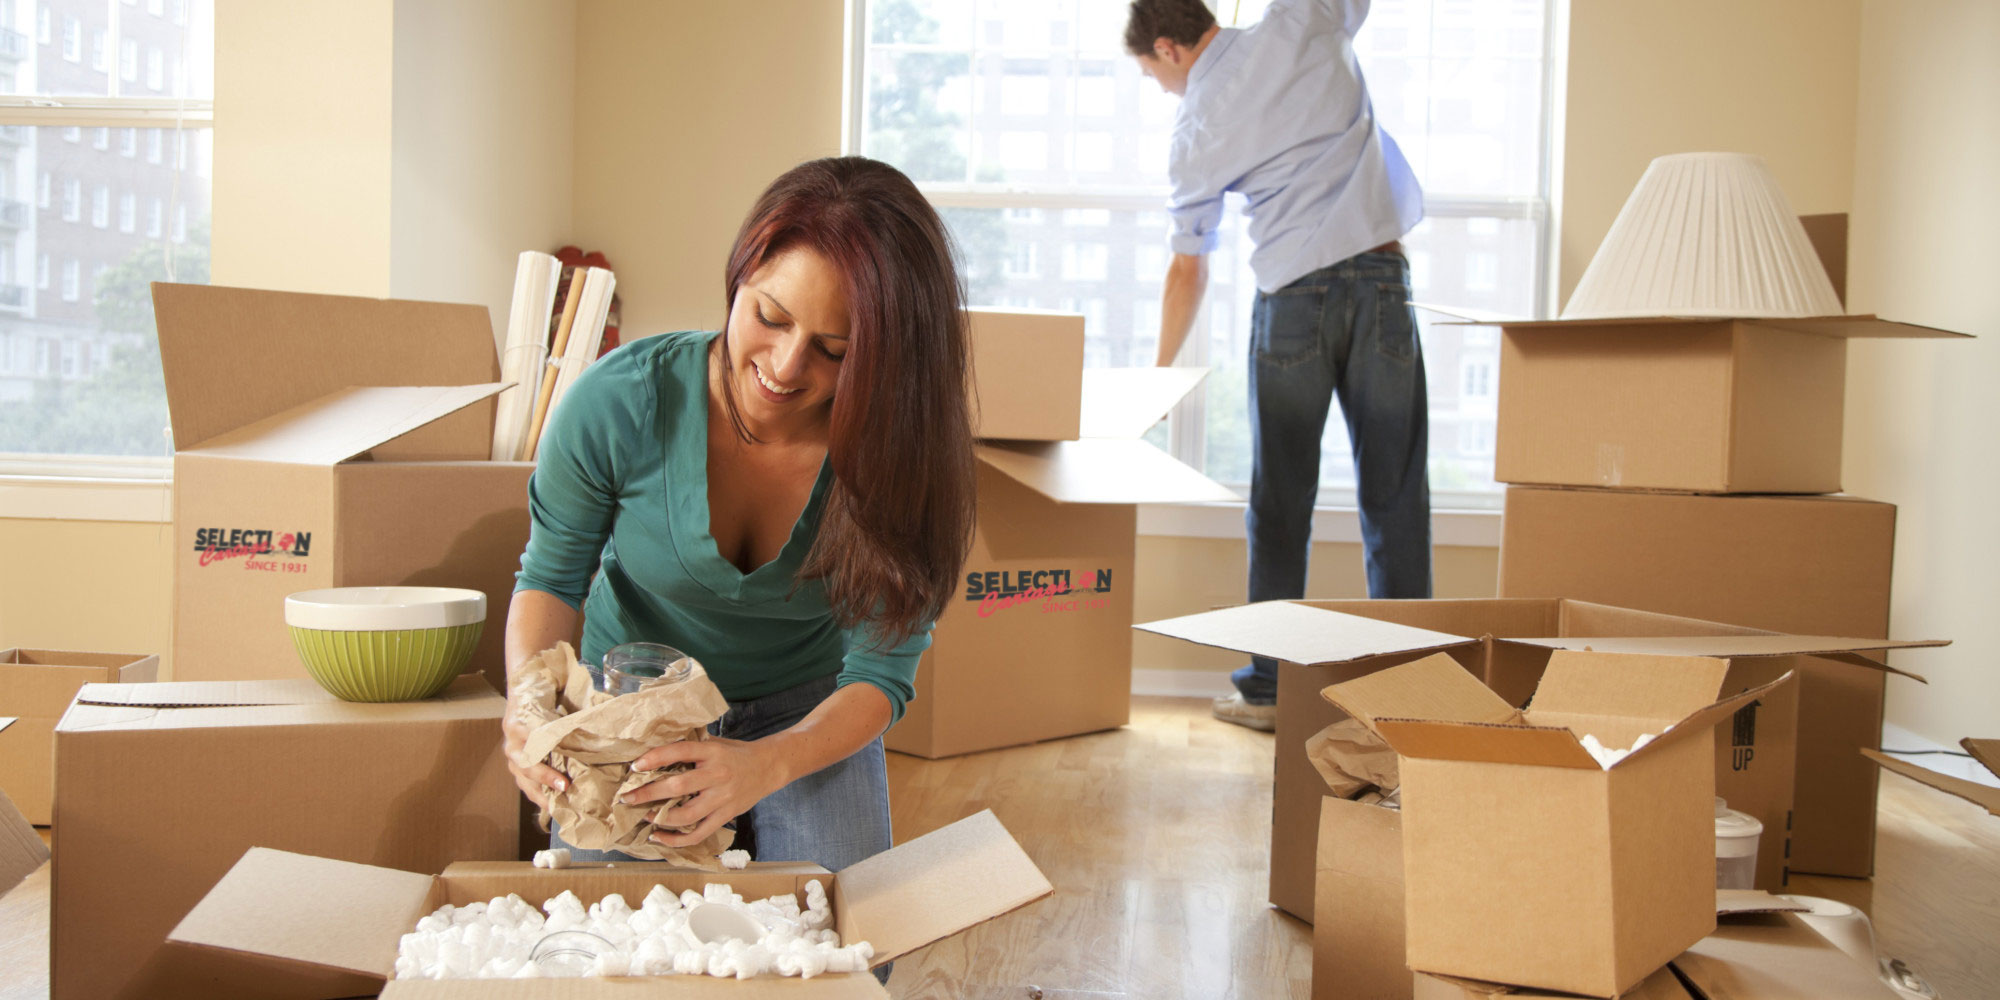 Selection Cartage is an affordable moving company in South Africa - and one of the most established